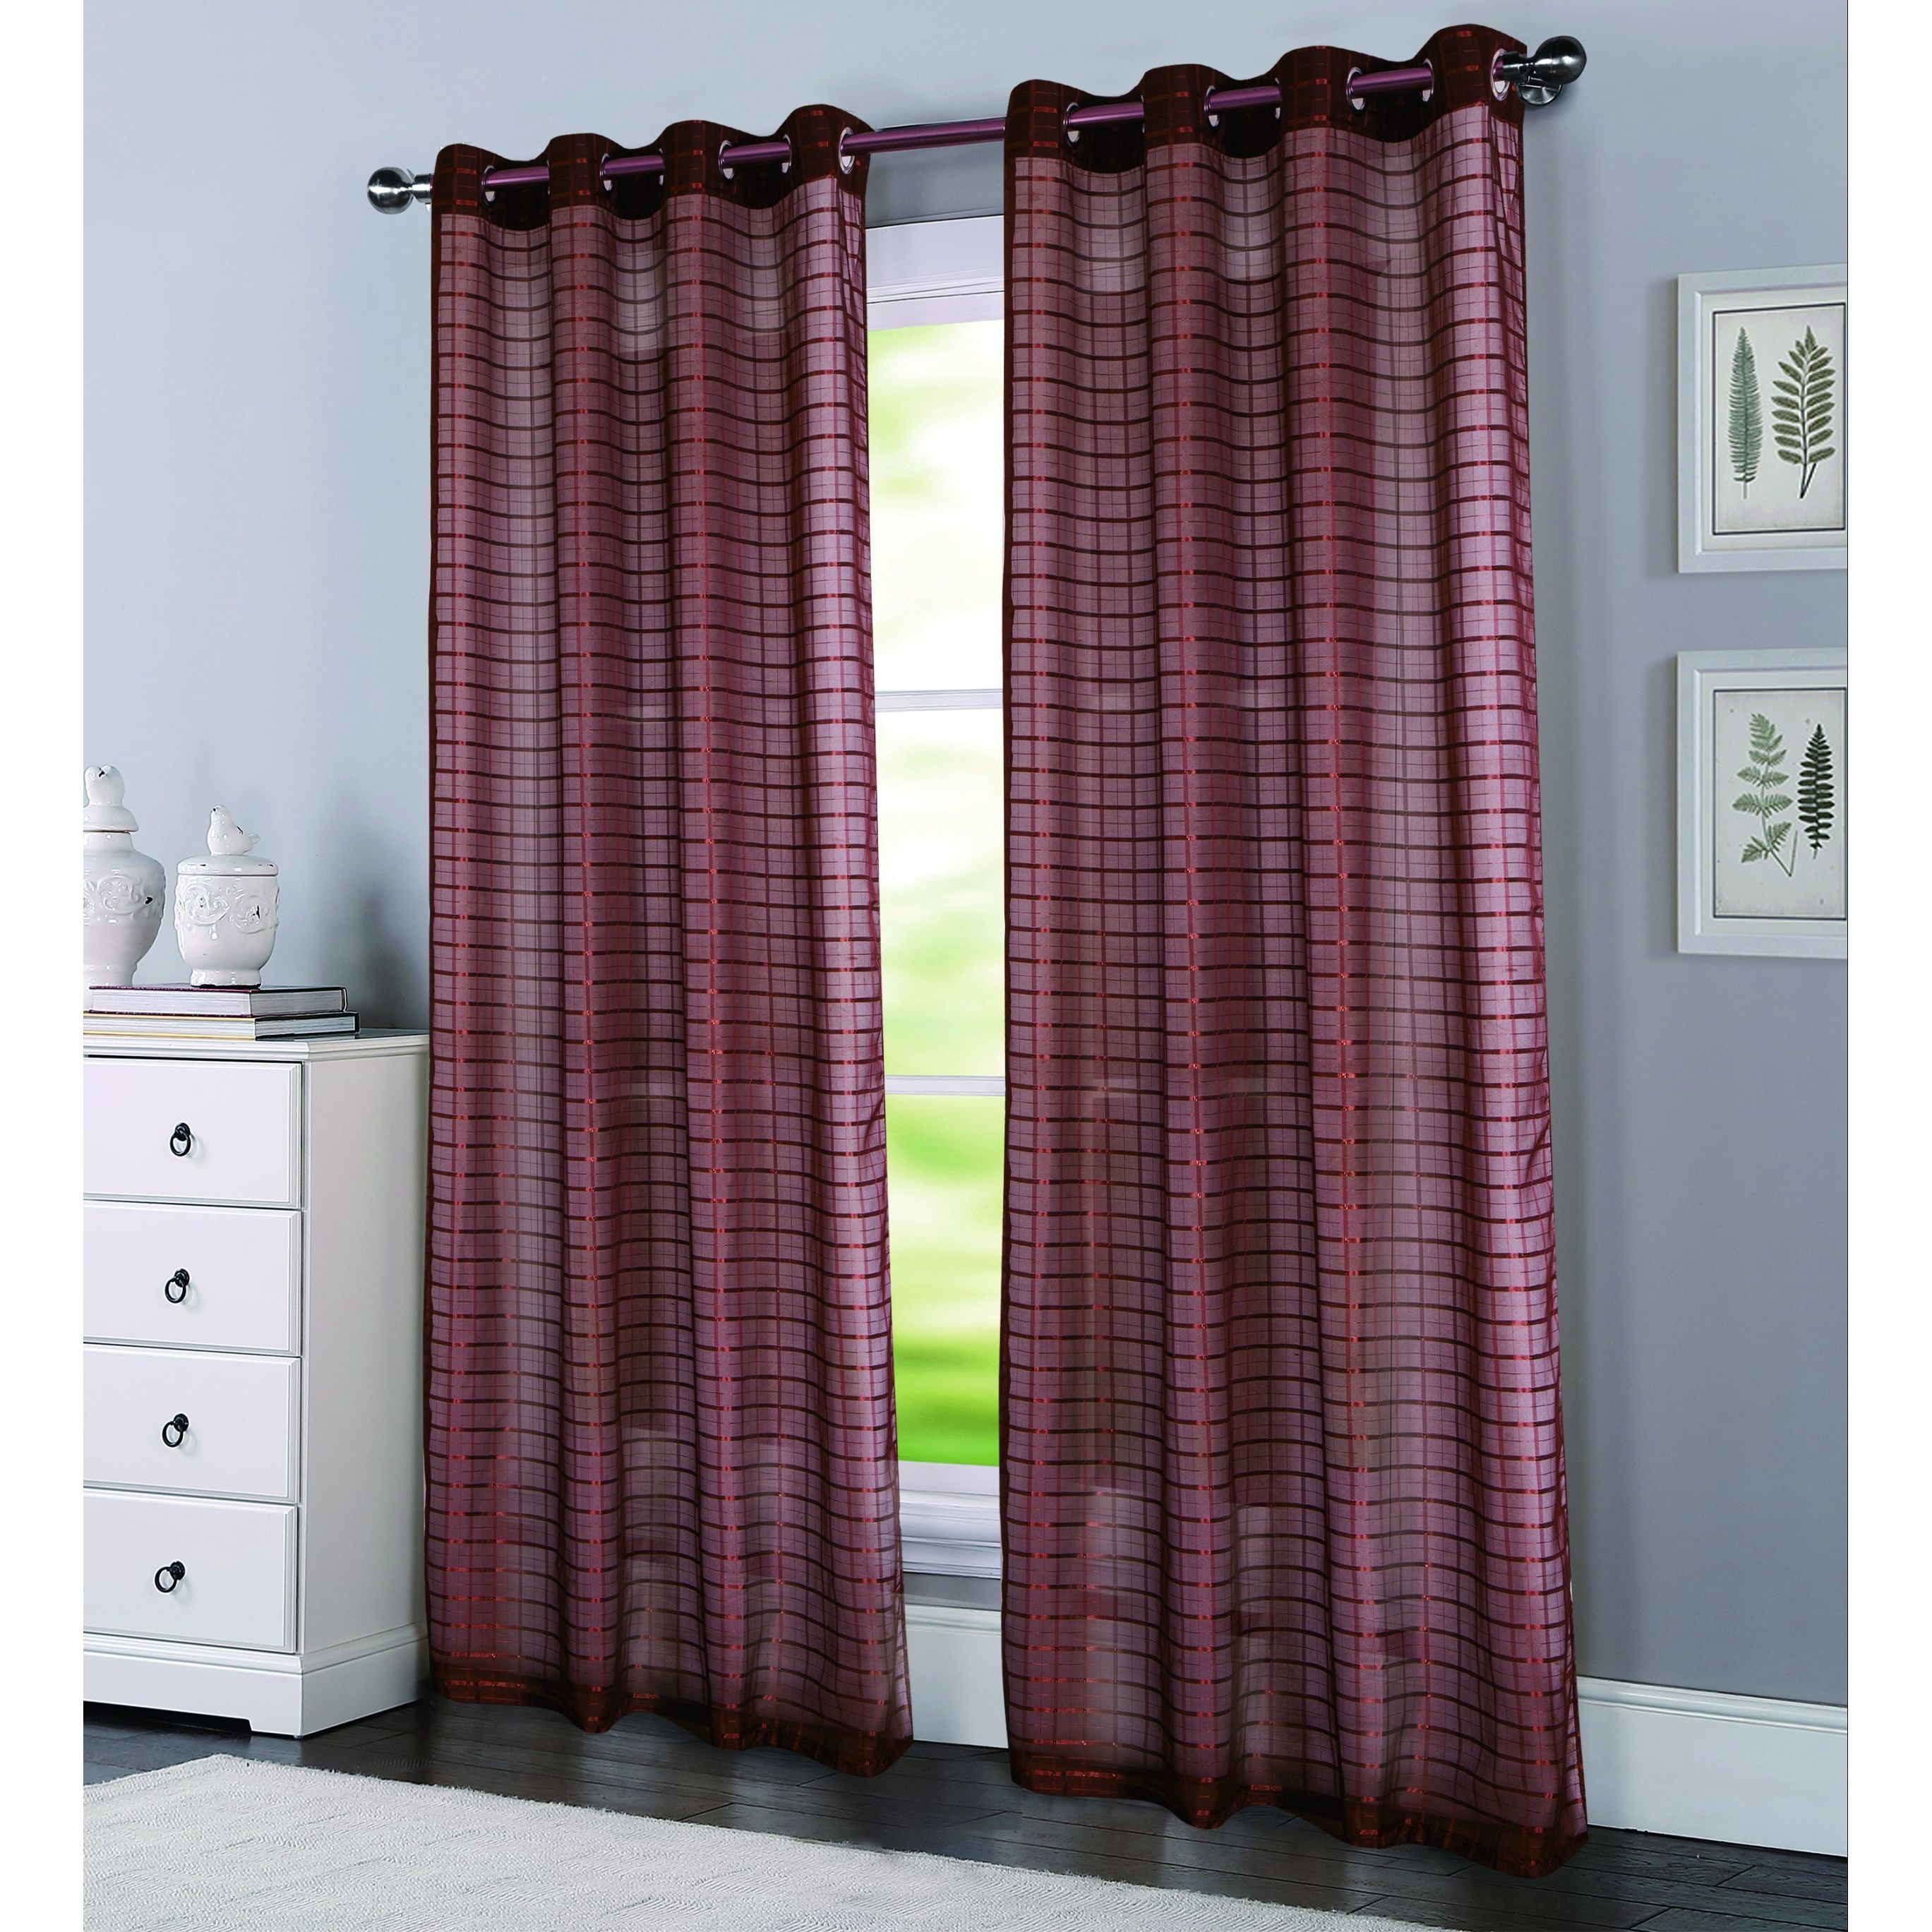 latte coffee curtains blockout eyelet blue plum purple valance drapes with curtain sheer brown matching blackout itm